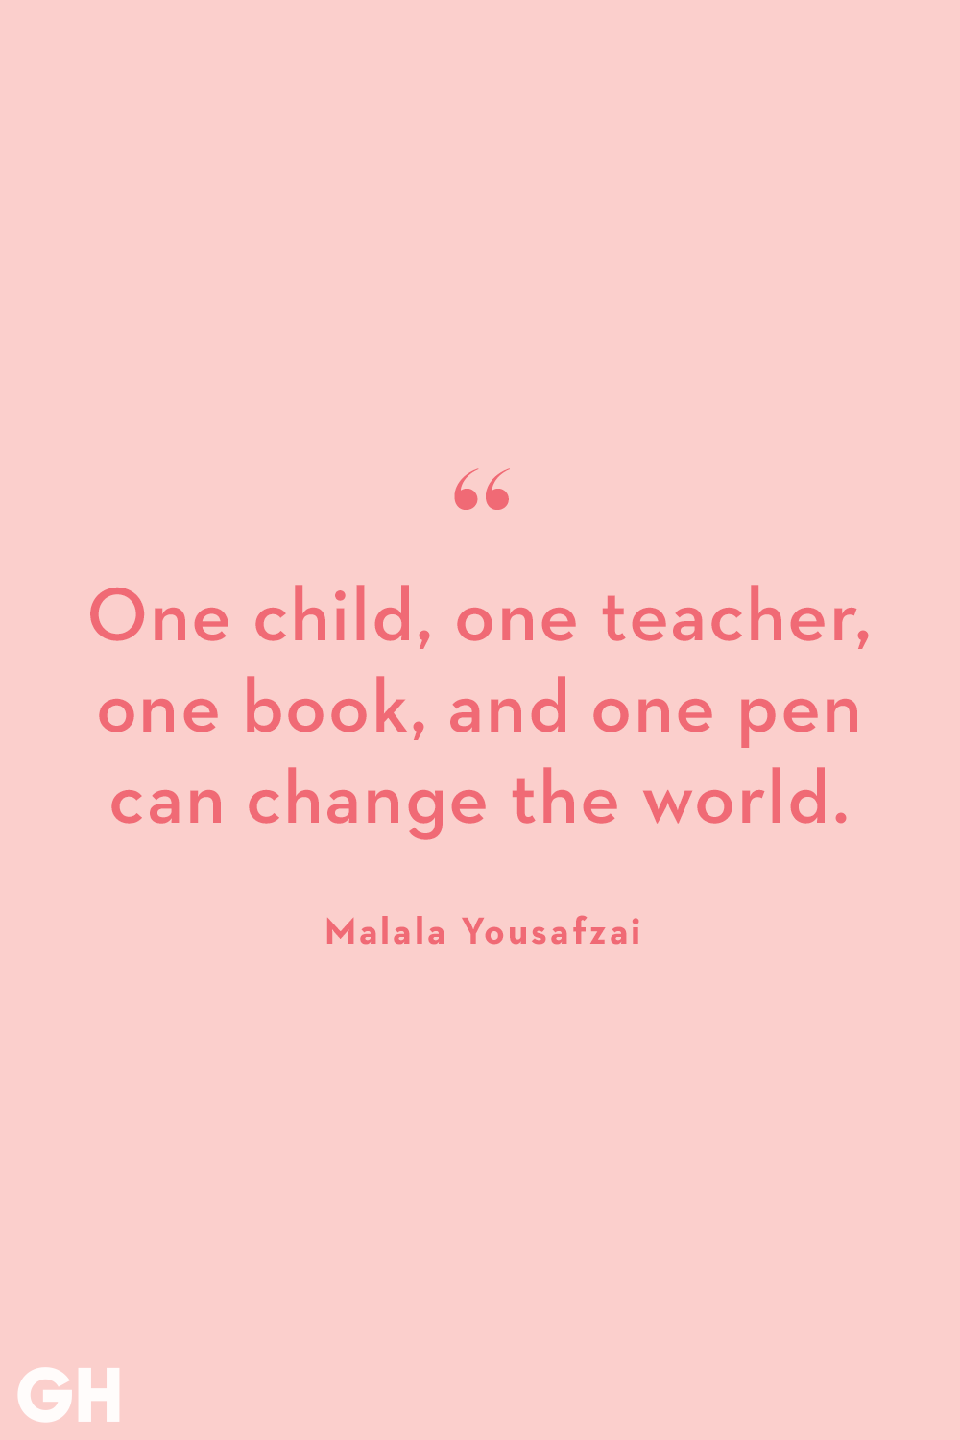 <p>One child, one teacher, one book, and one pen can change the world.</p>